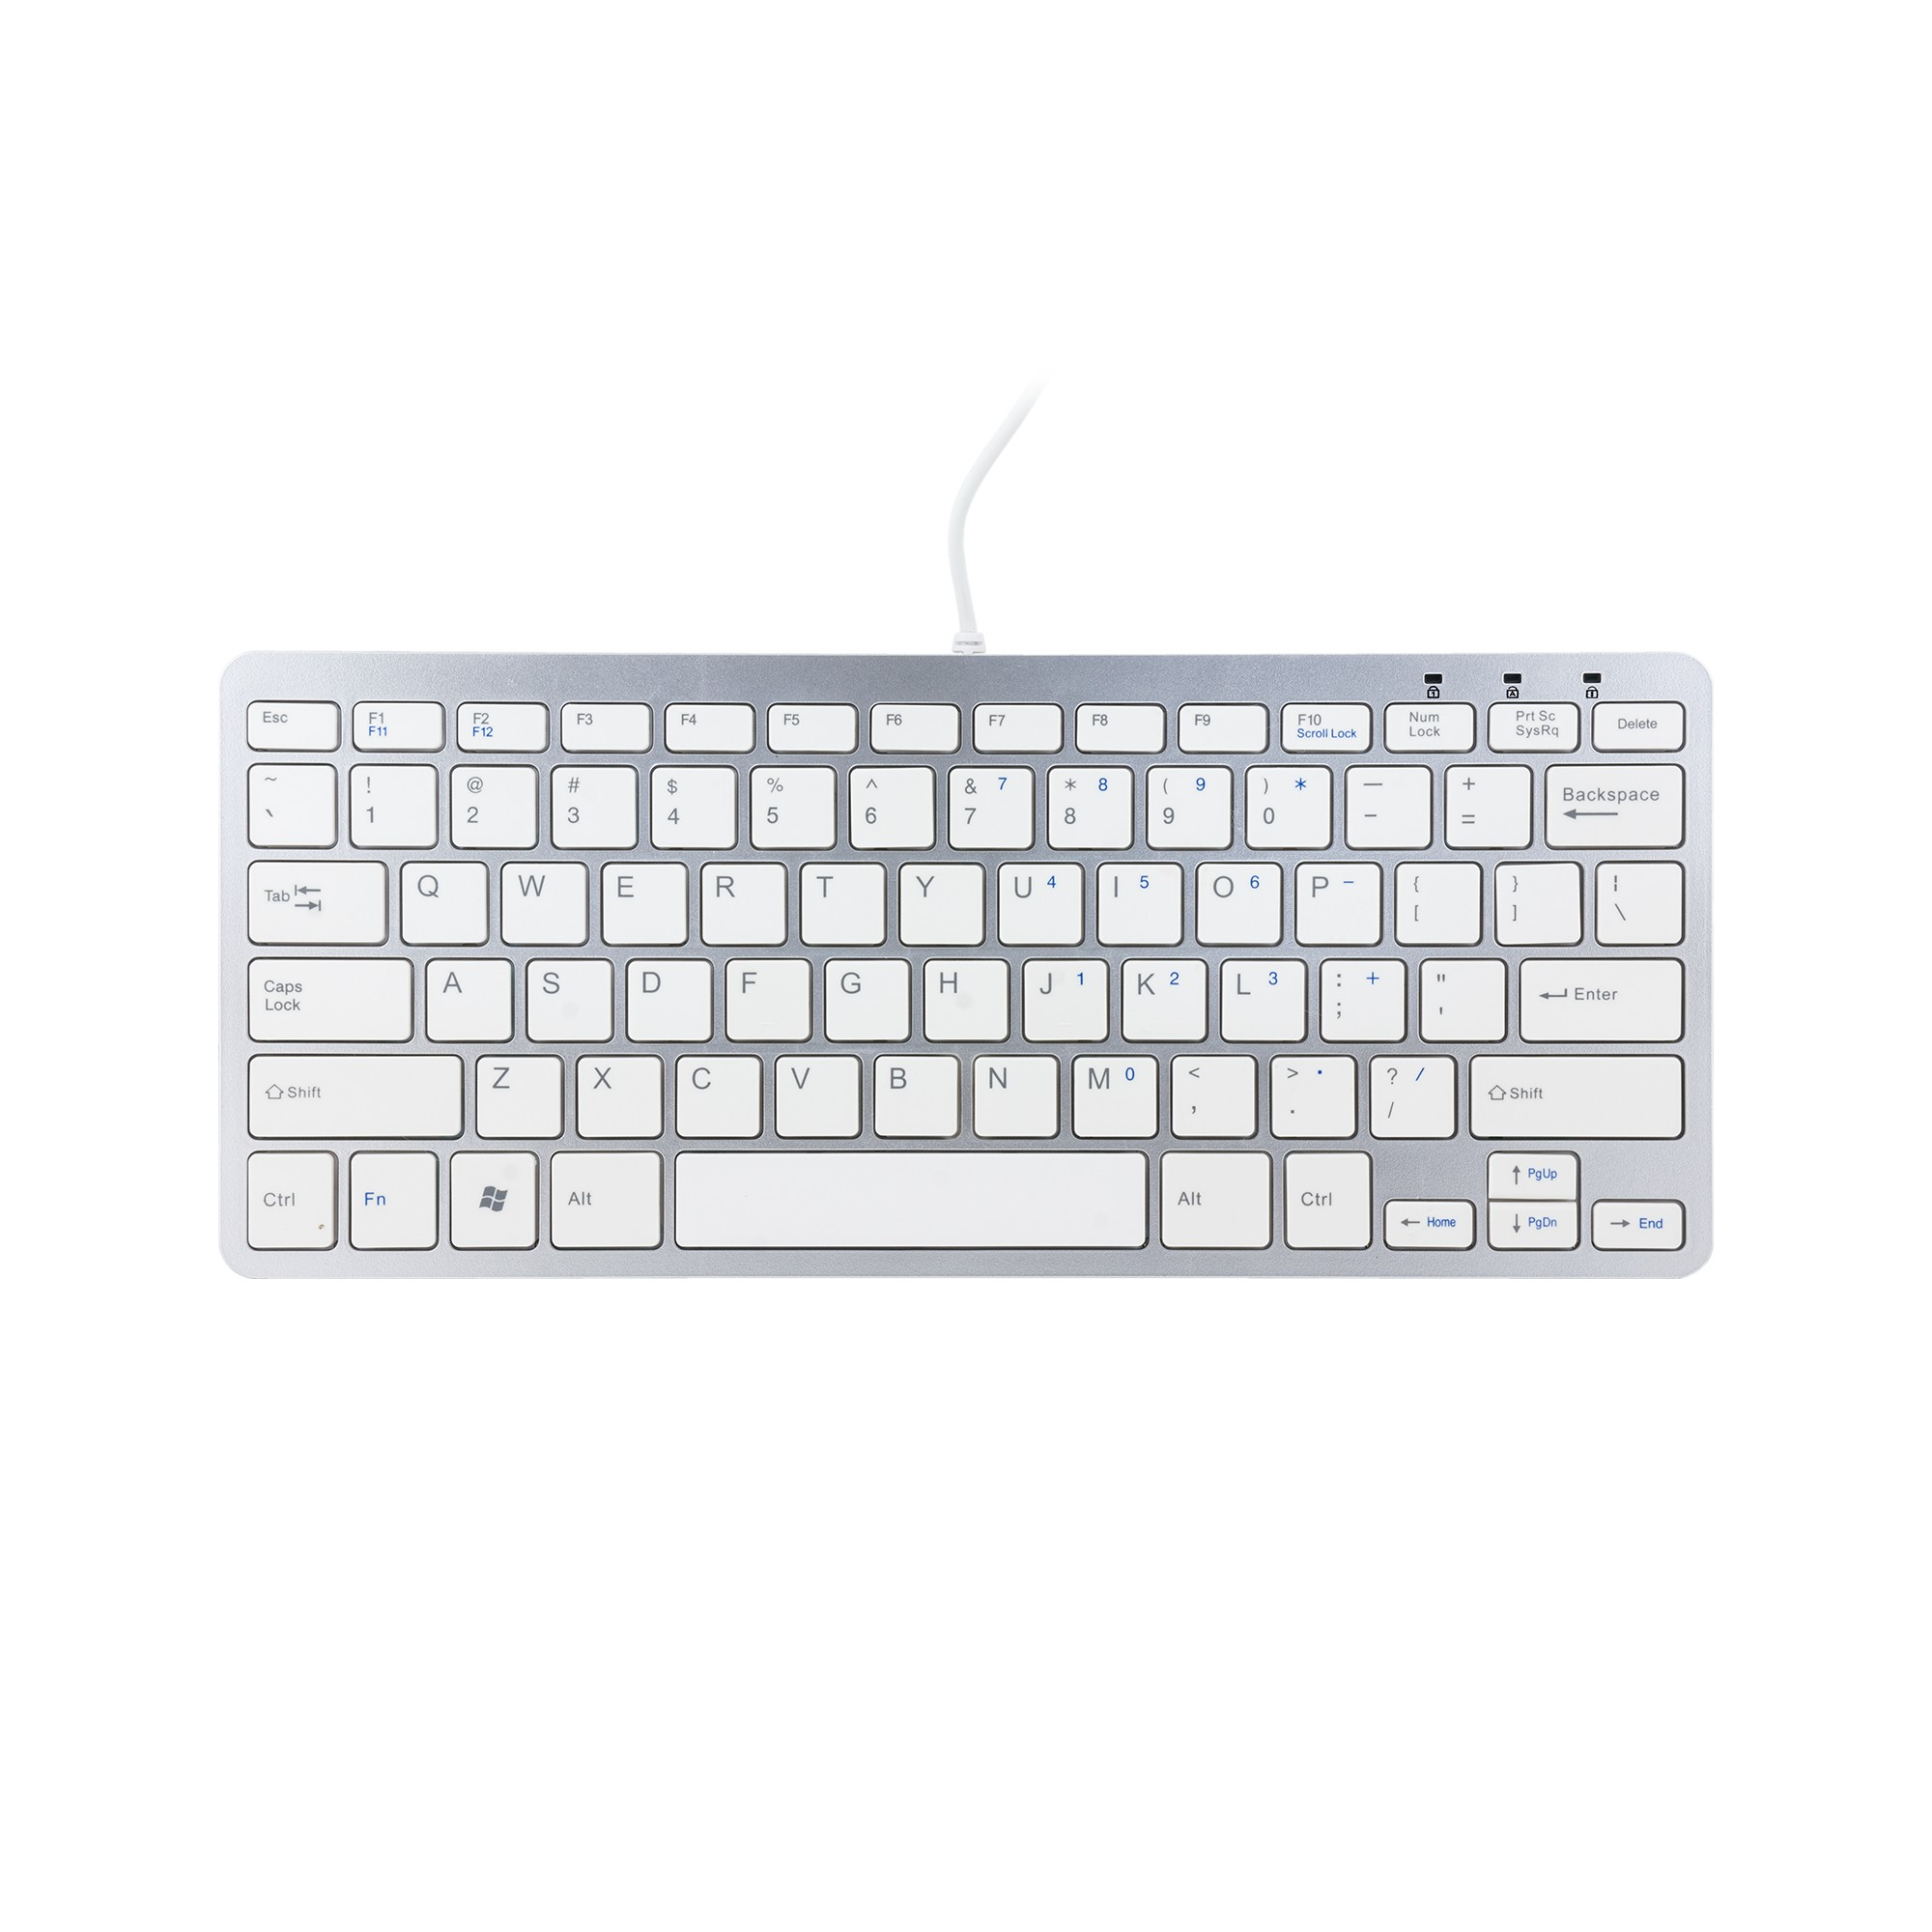 R-GO TOOLS RGOECQYW COMPACT KEYBOARD, QWERTY (US), WHITE, WIRED